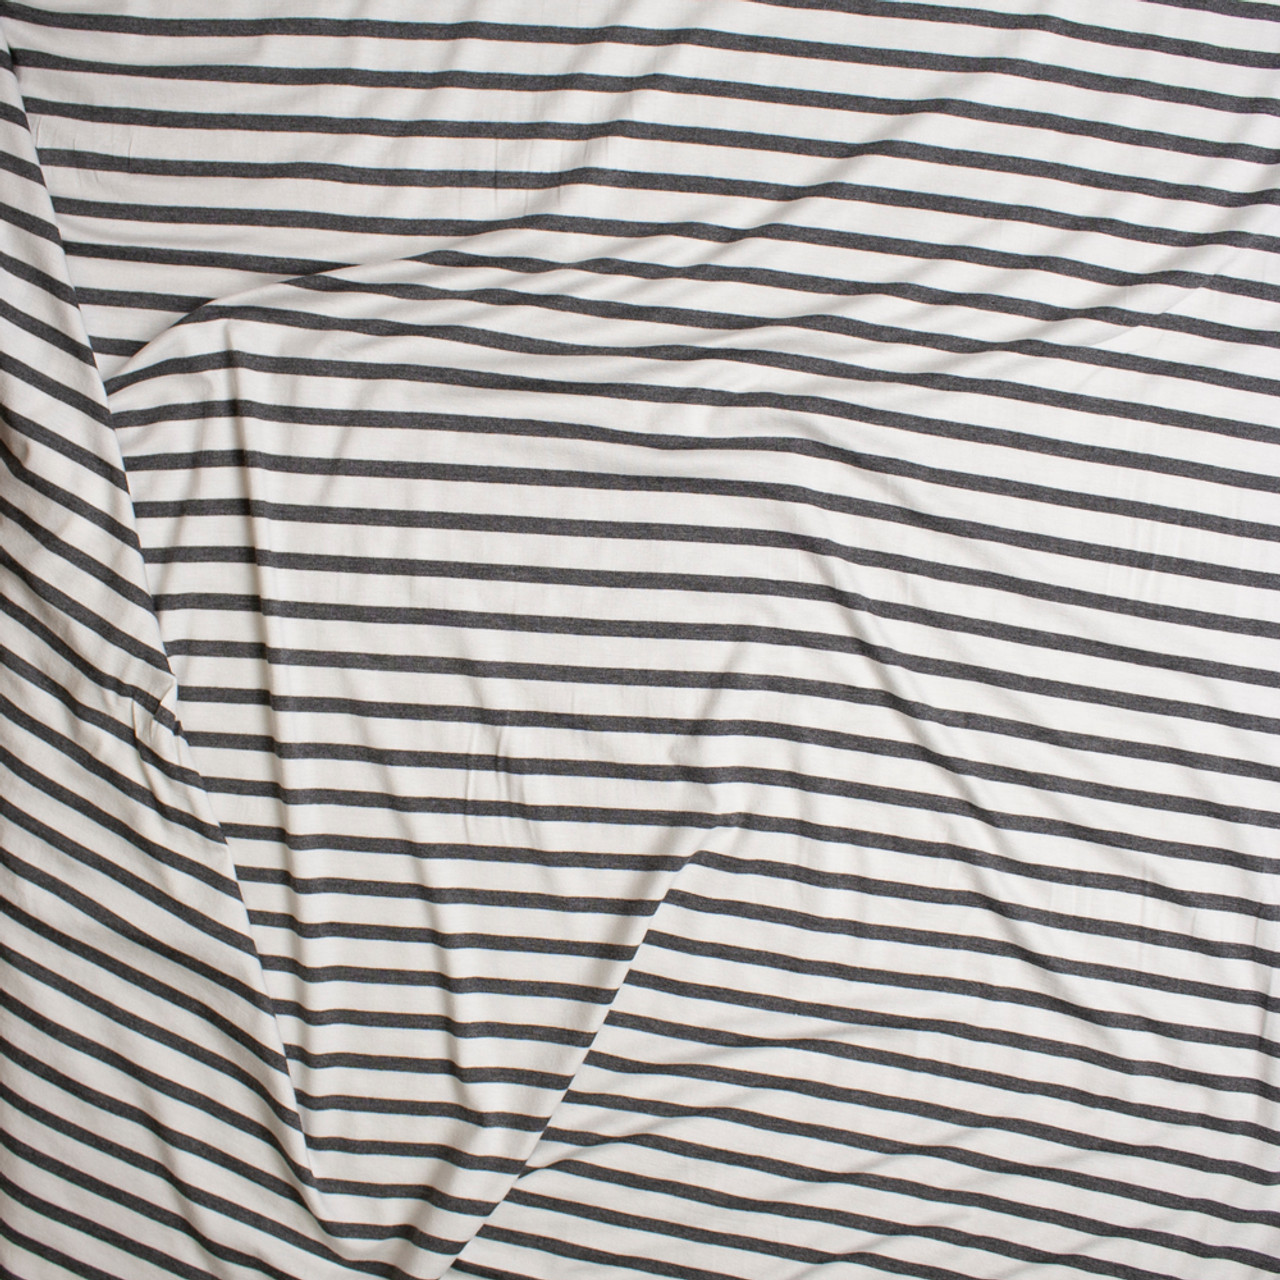 98cead55171 ... Charcoal and White Pencil Stripe Stretch Modal Jersey Knit Fabric By  The Yard - Wide shot